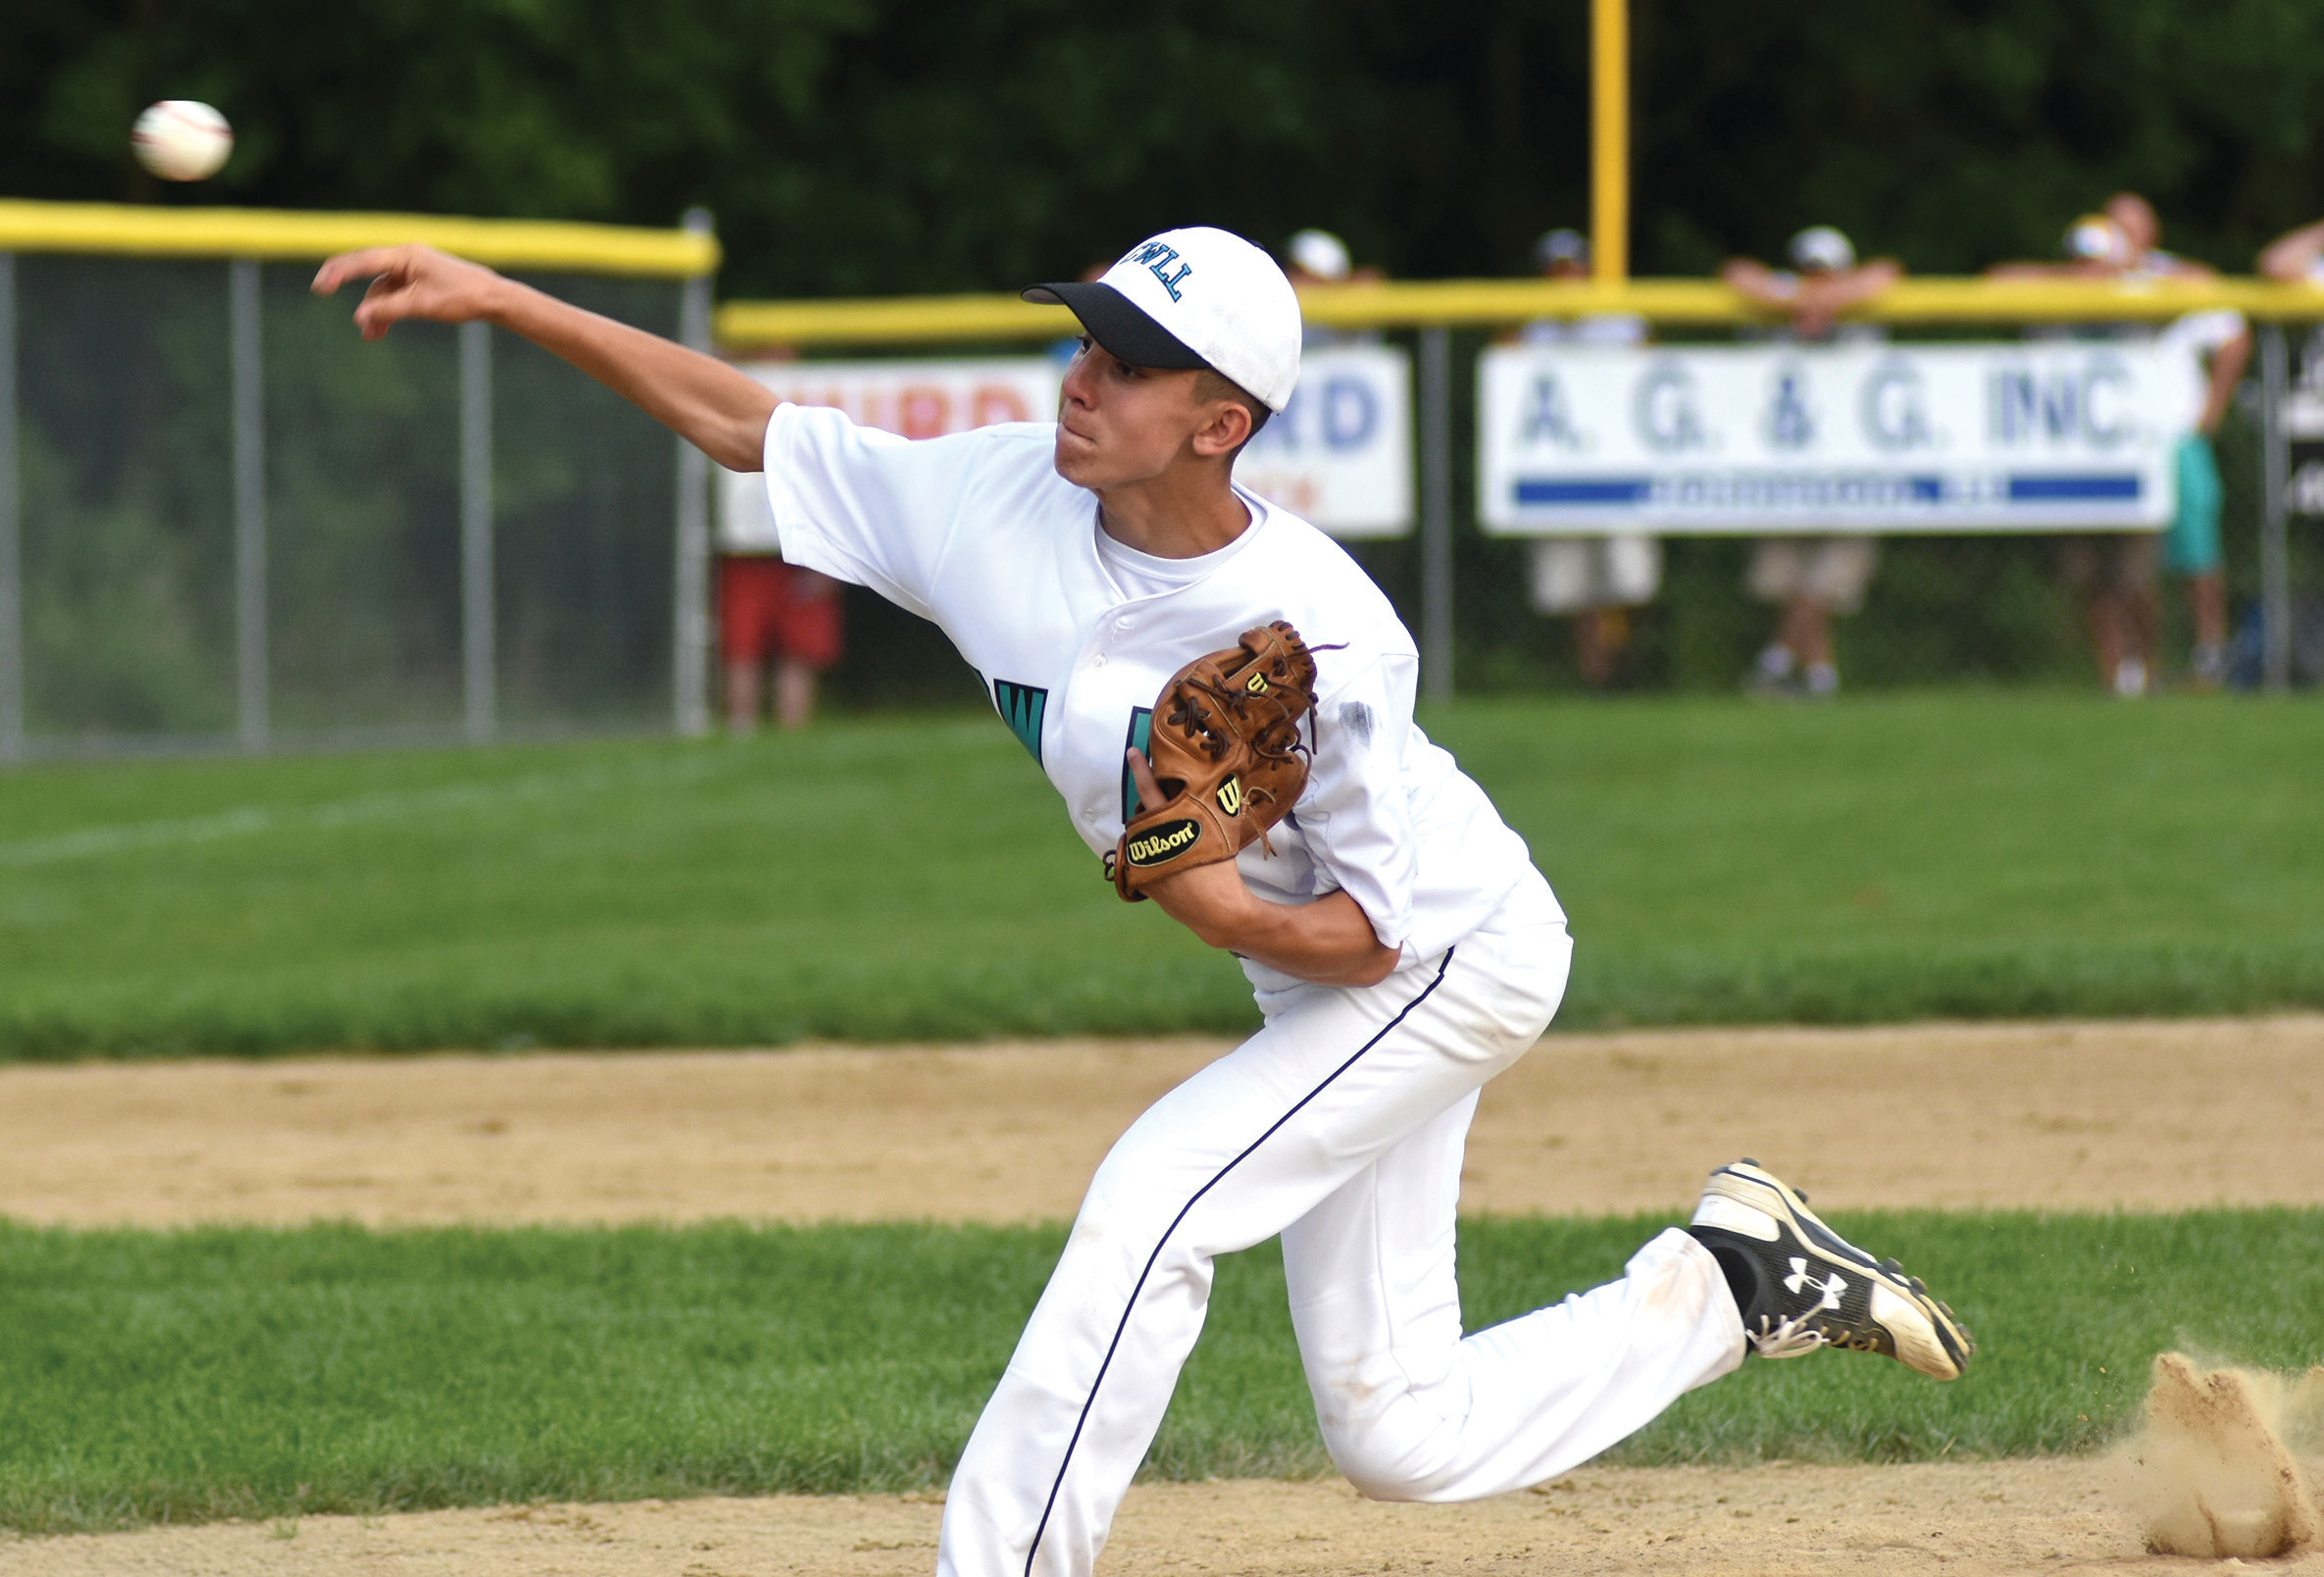 Perry Gaudreau produced a strong start on the mound for Cranston Western as it fell to Cumberland American, 2-0.